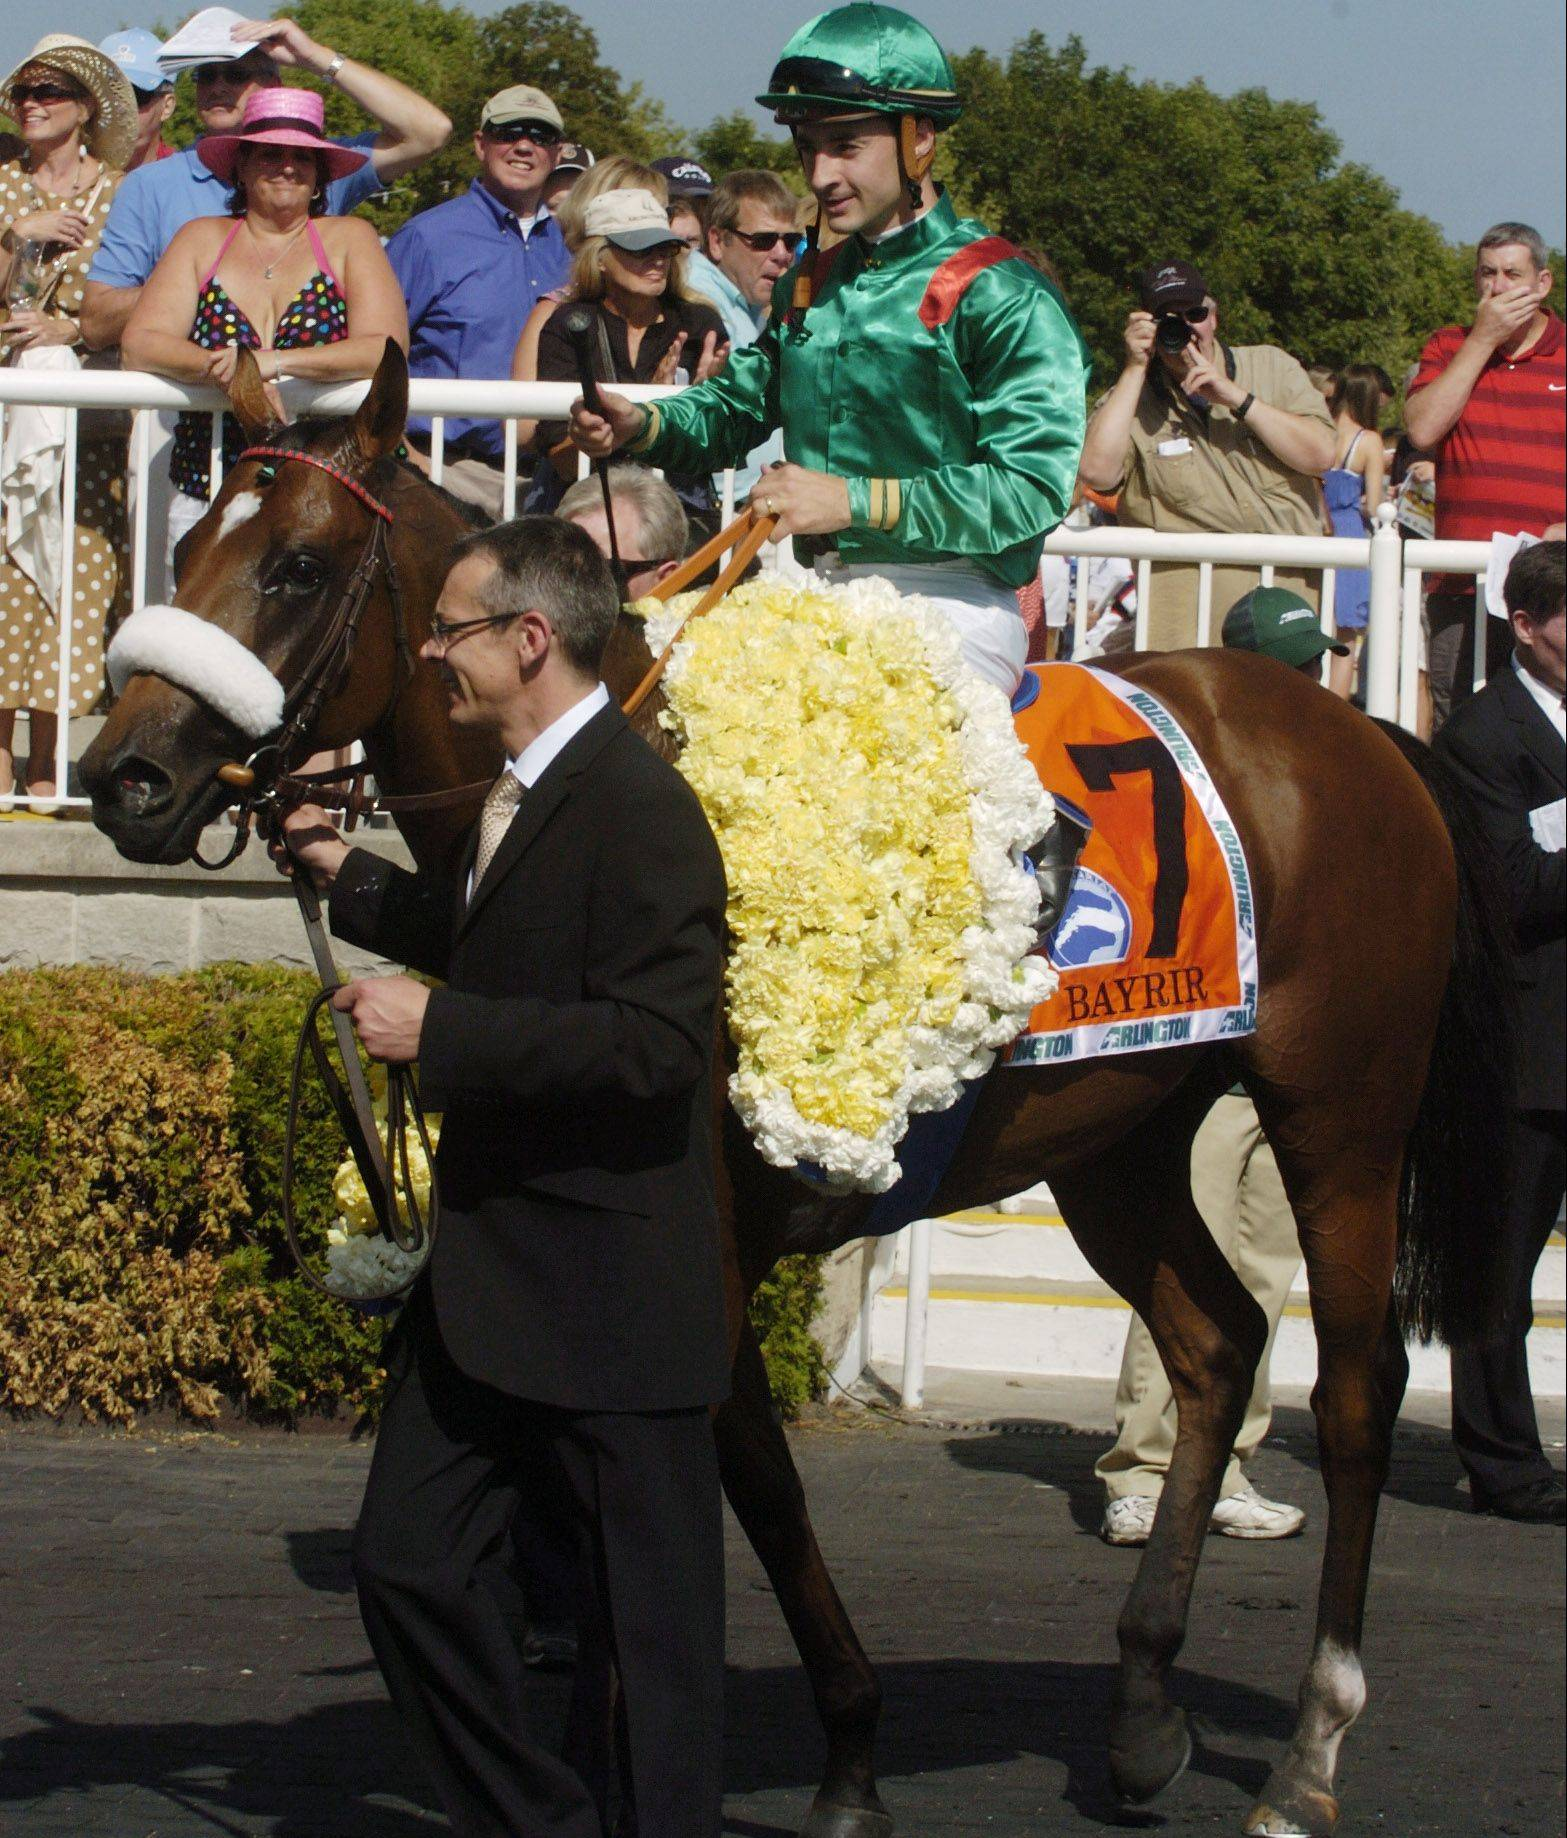 Bayrir, with jockey Christophe Lemaire, won the Secretariat Stakes on Saturday.